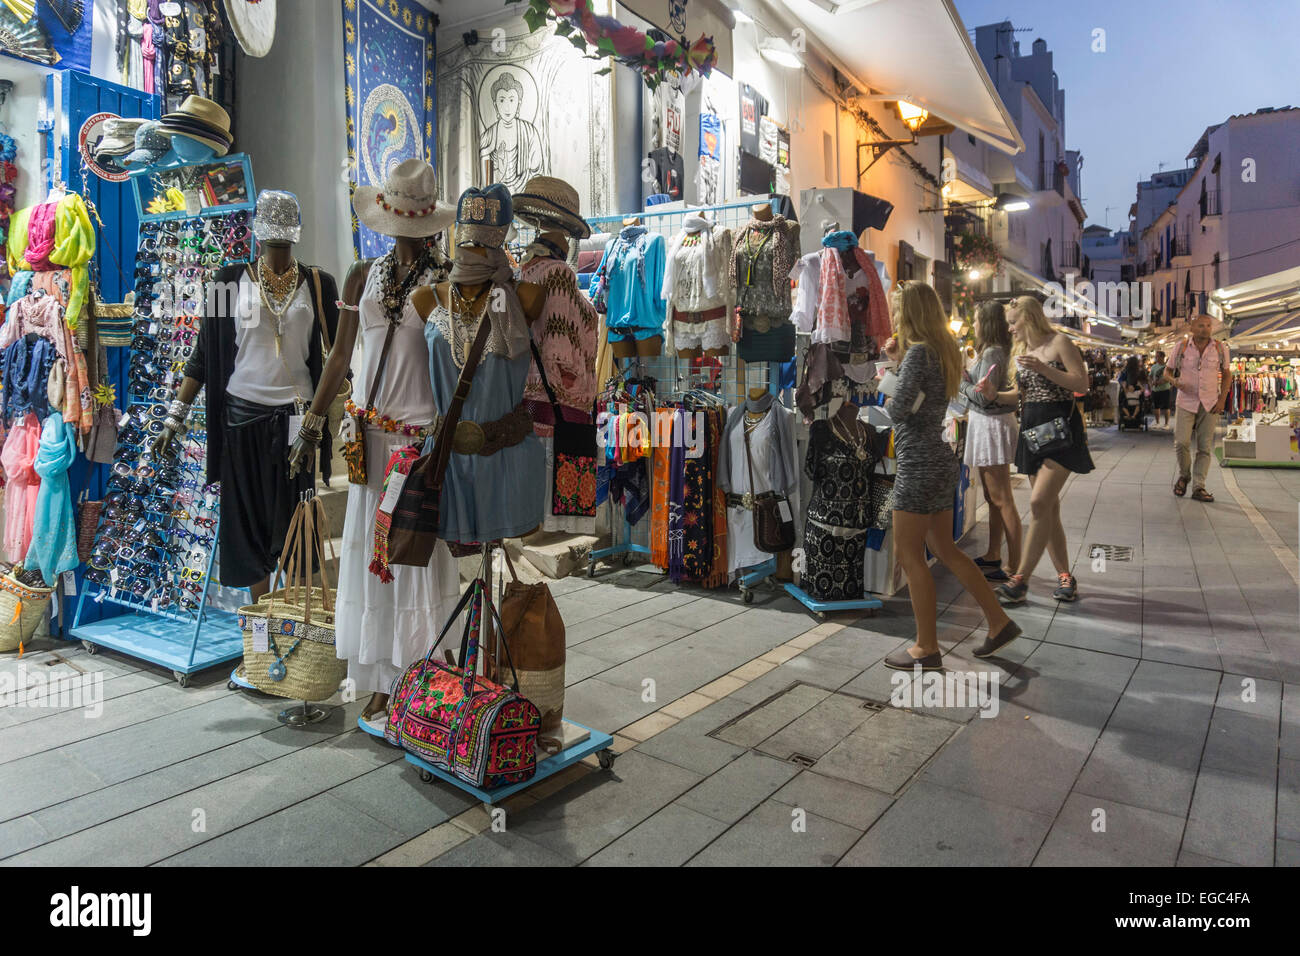 Ibiza town, Boutiques, Shops, Balearic Islands, Spain - Stock Image